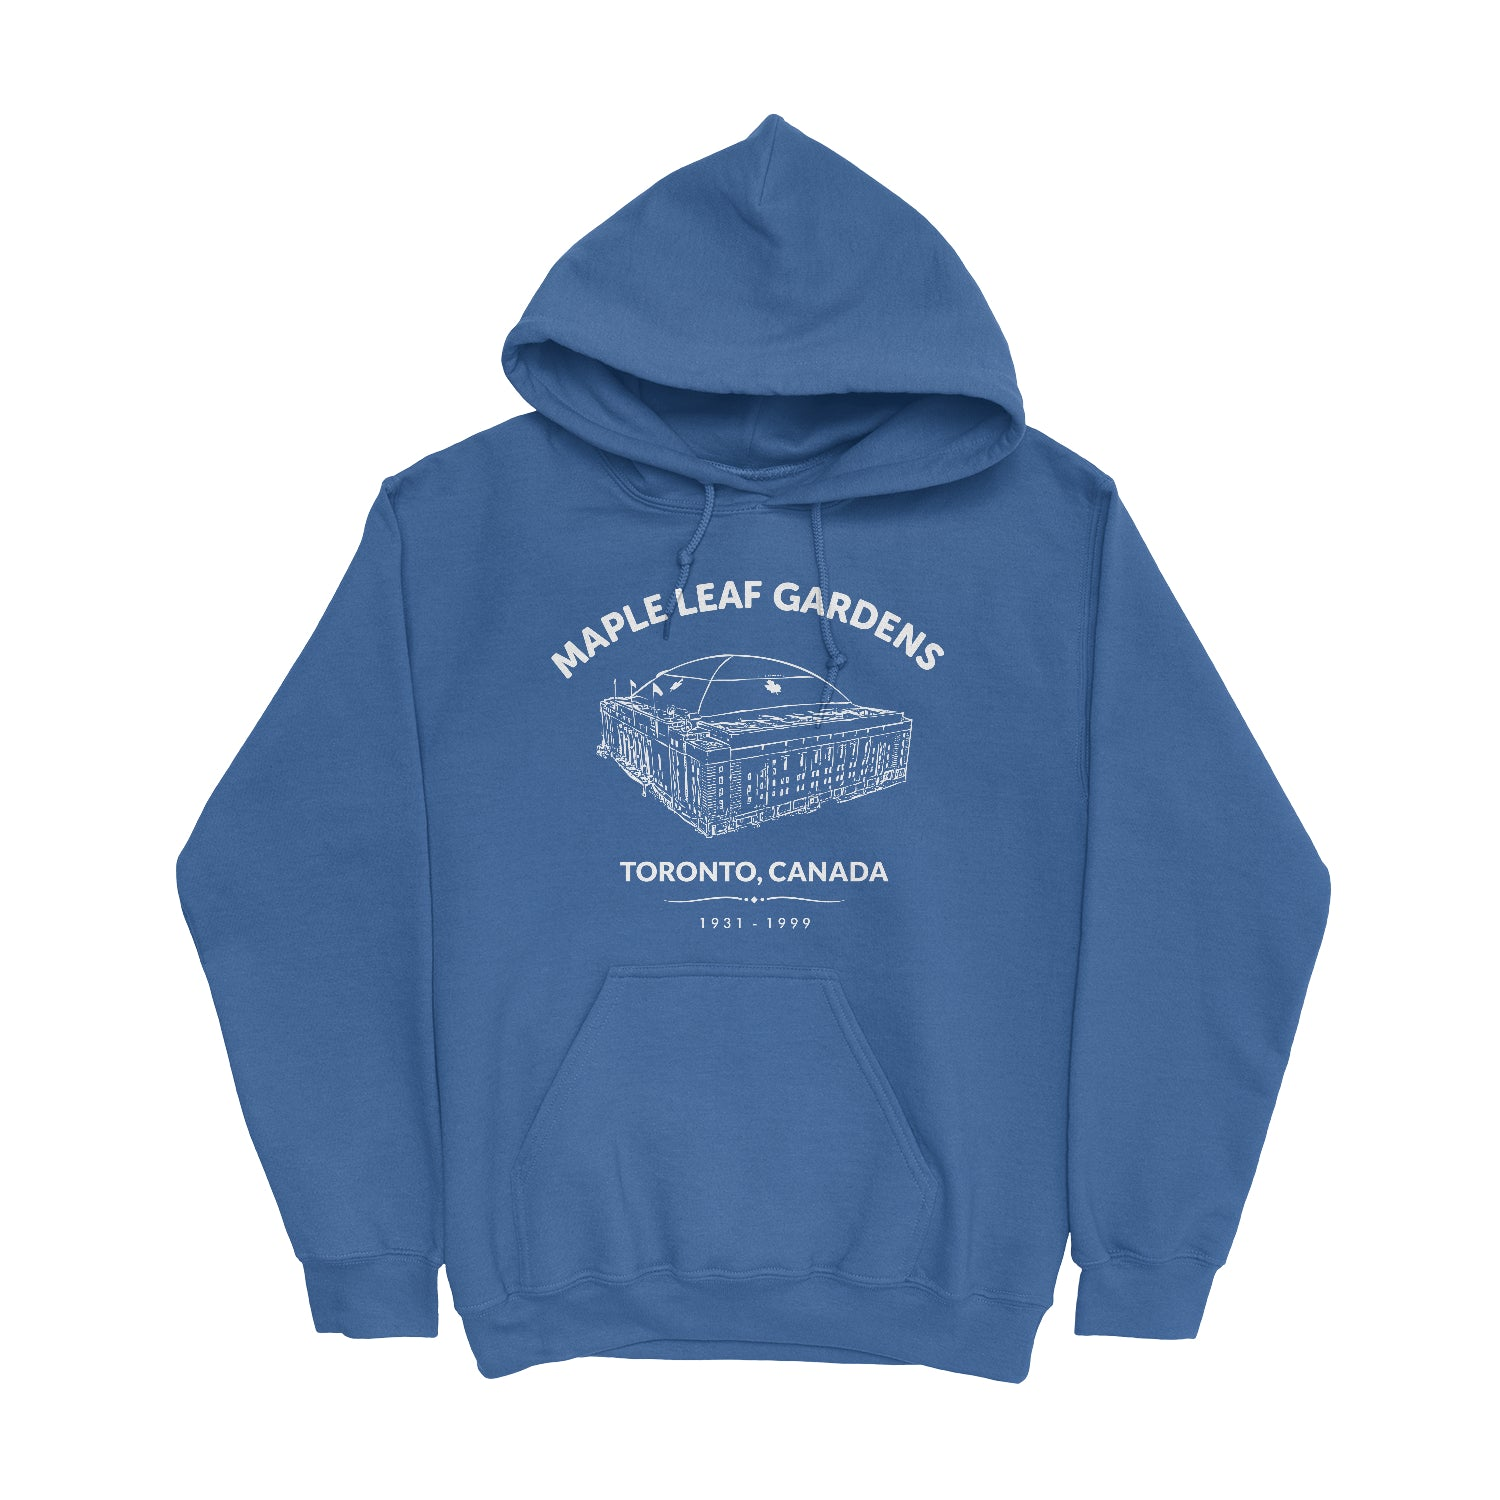 Retro Maple Leaf Gardens Unisex Hooded Sweatshirt